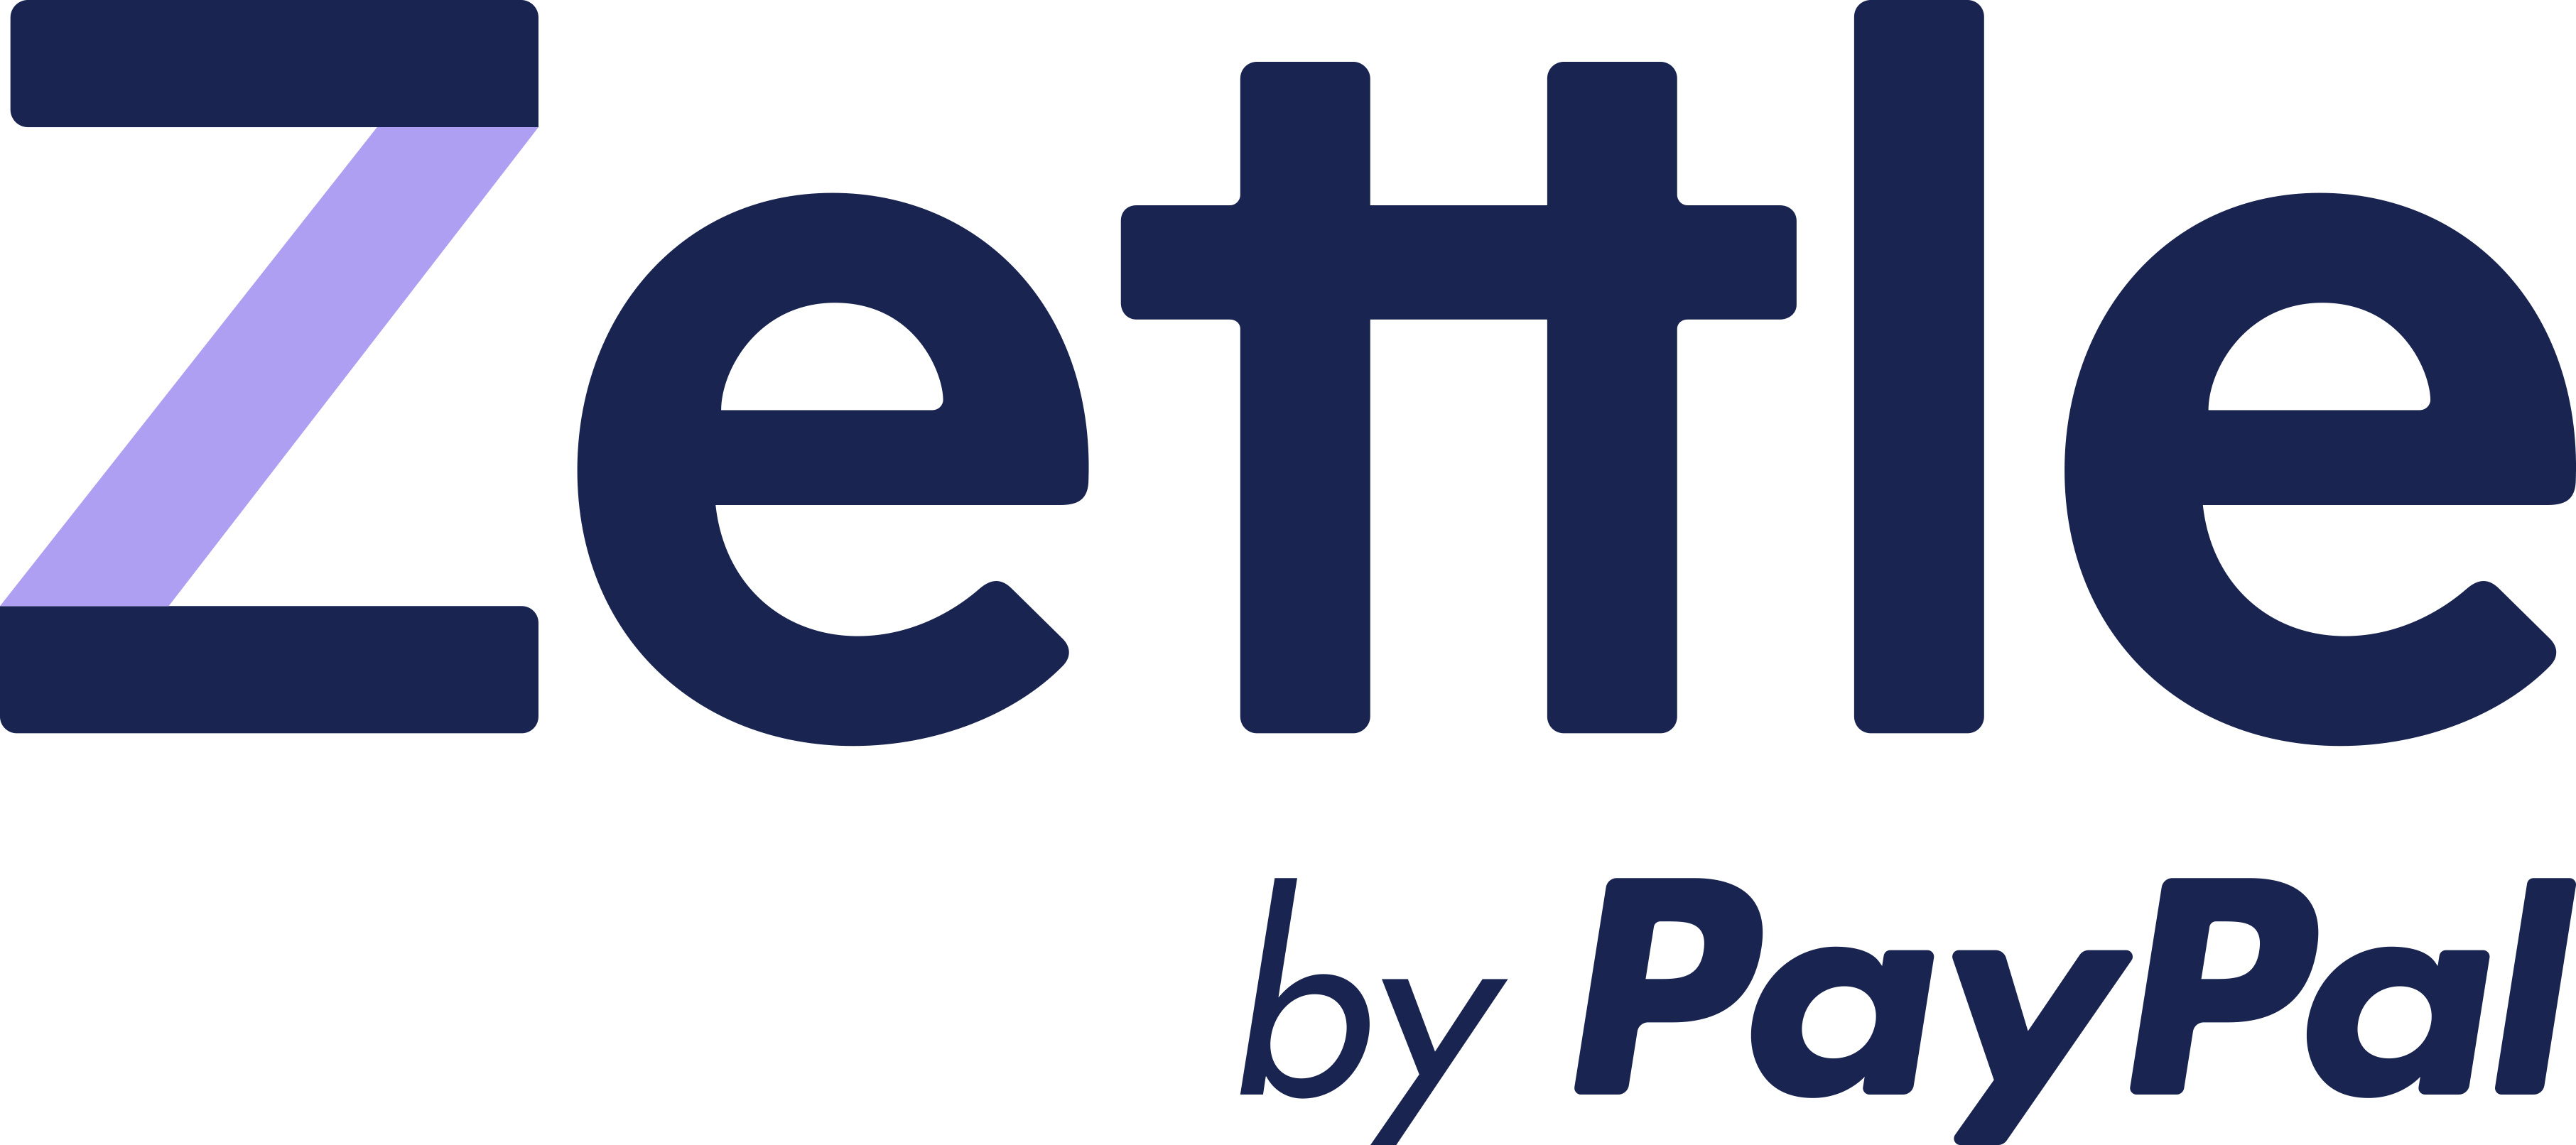 One of our partners, Zettle